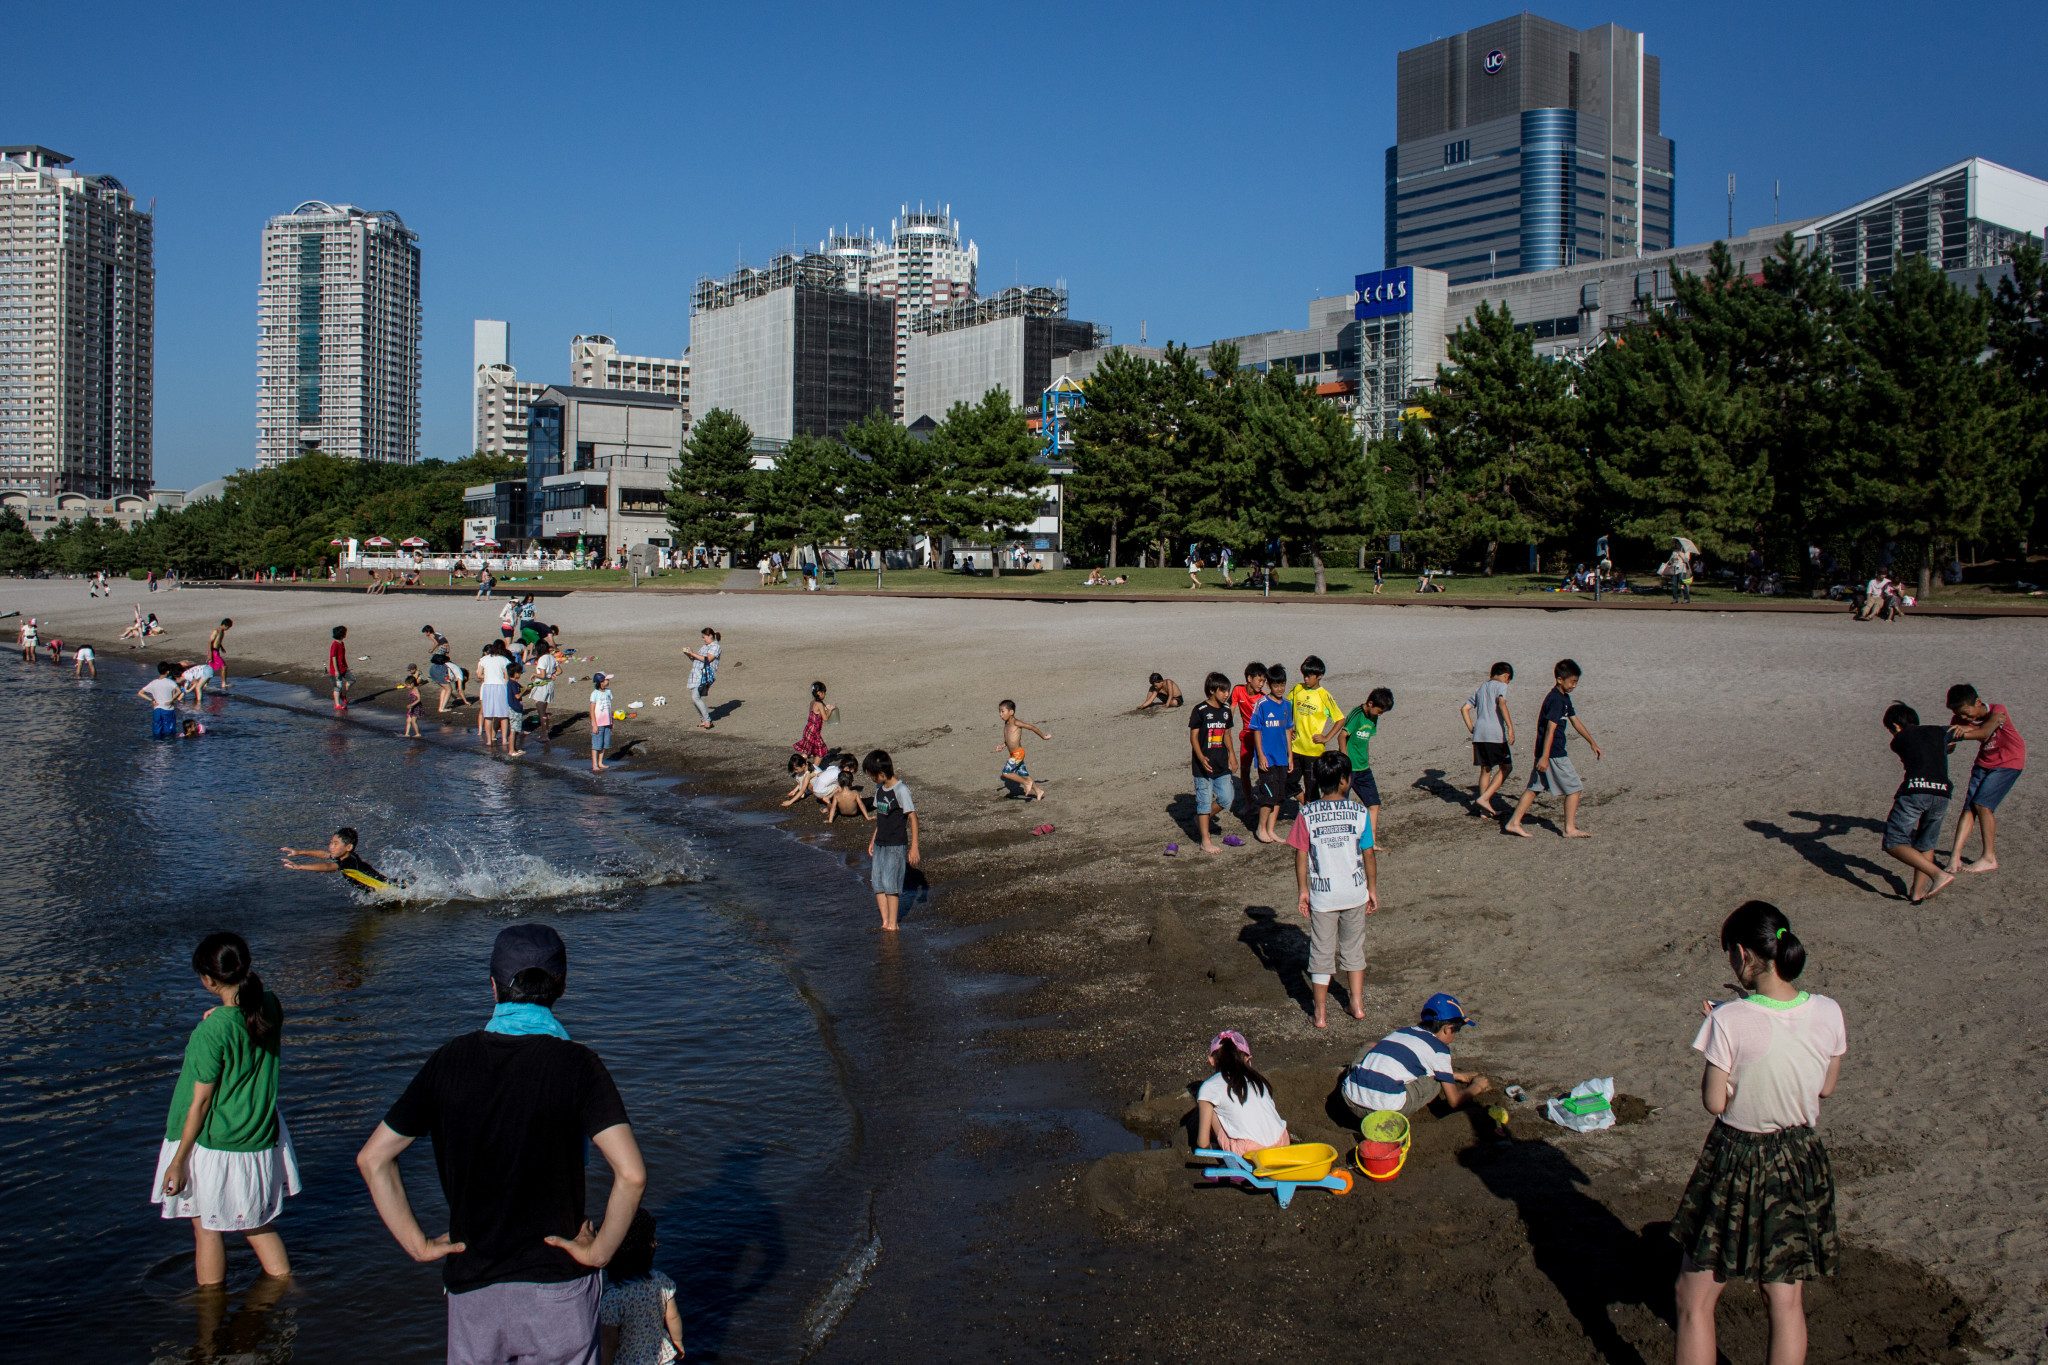 Odaiba Beach in Tokyo has been visited by Paris delegates ©Getty Images